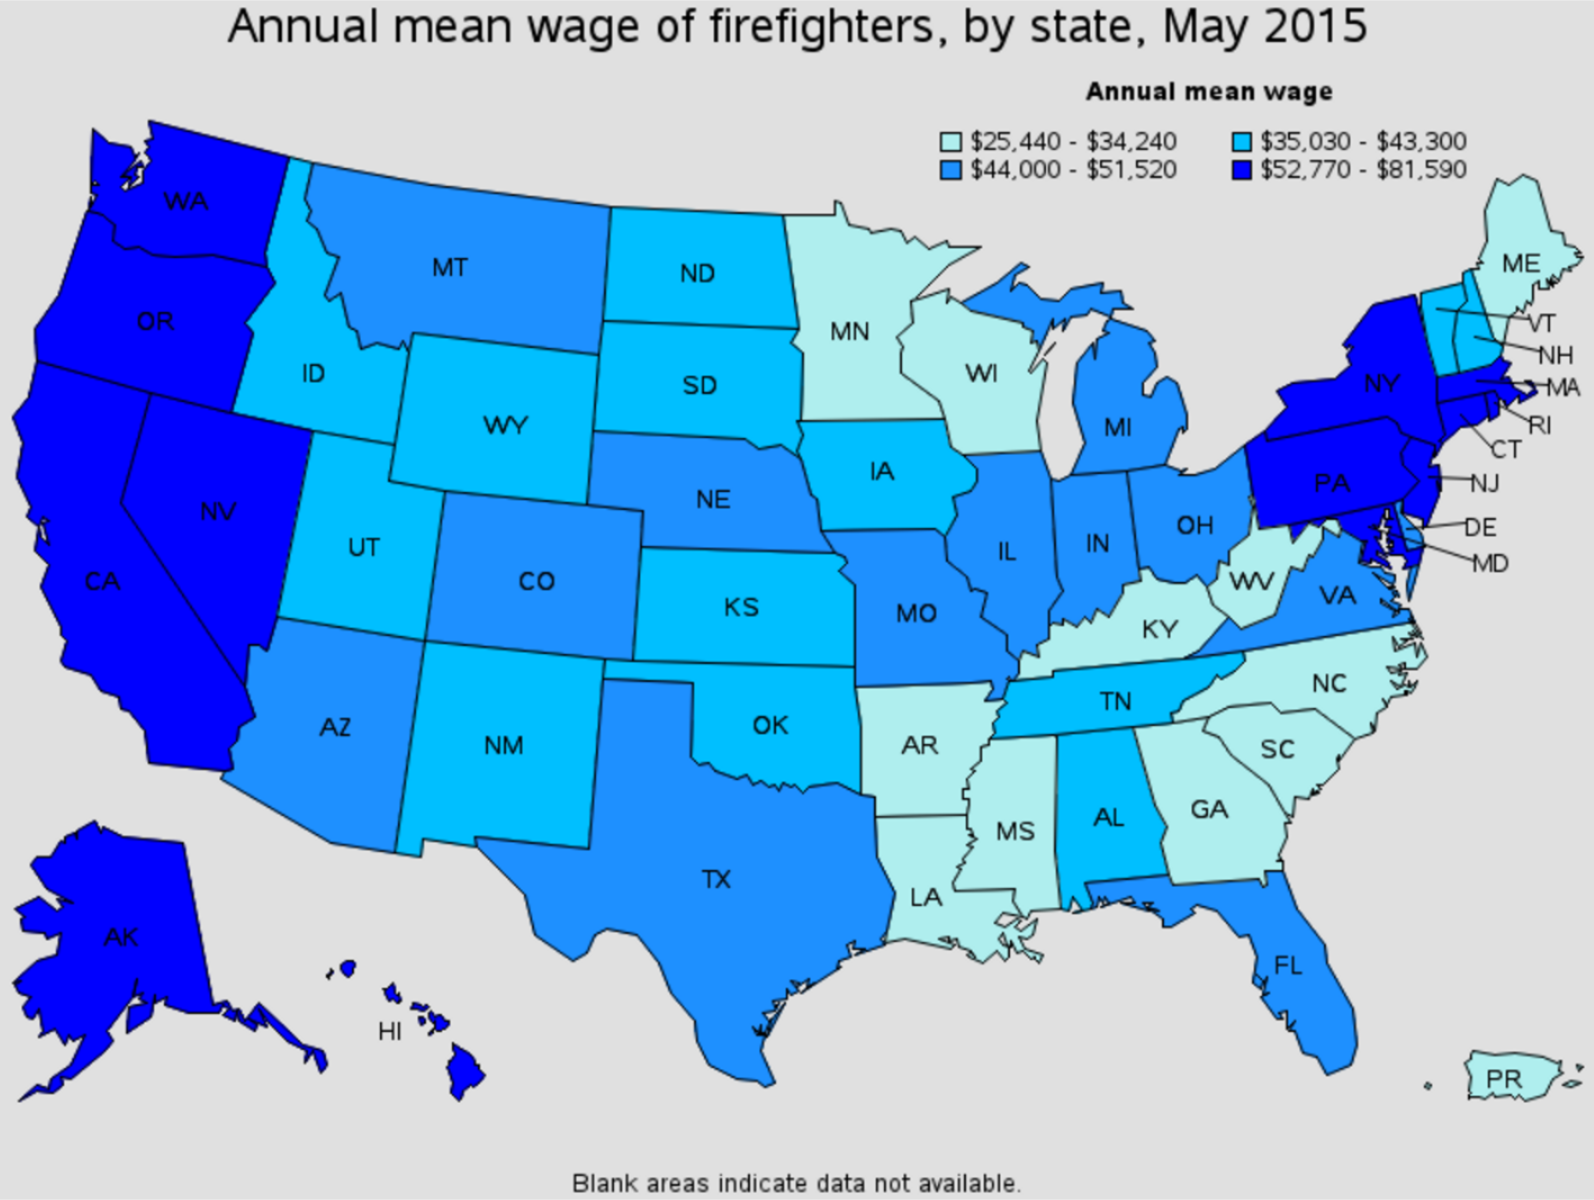 firefighter average salary by state Williamsburg Iowa